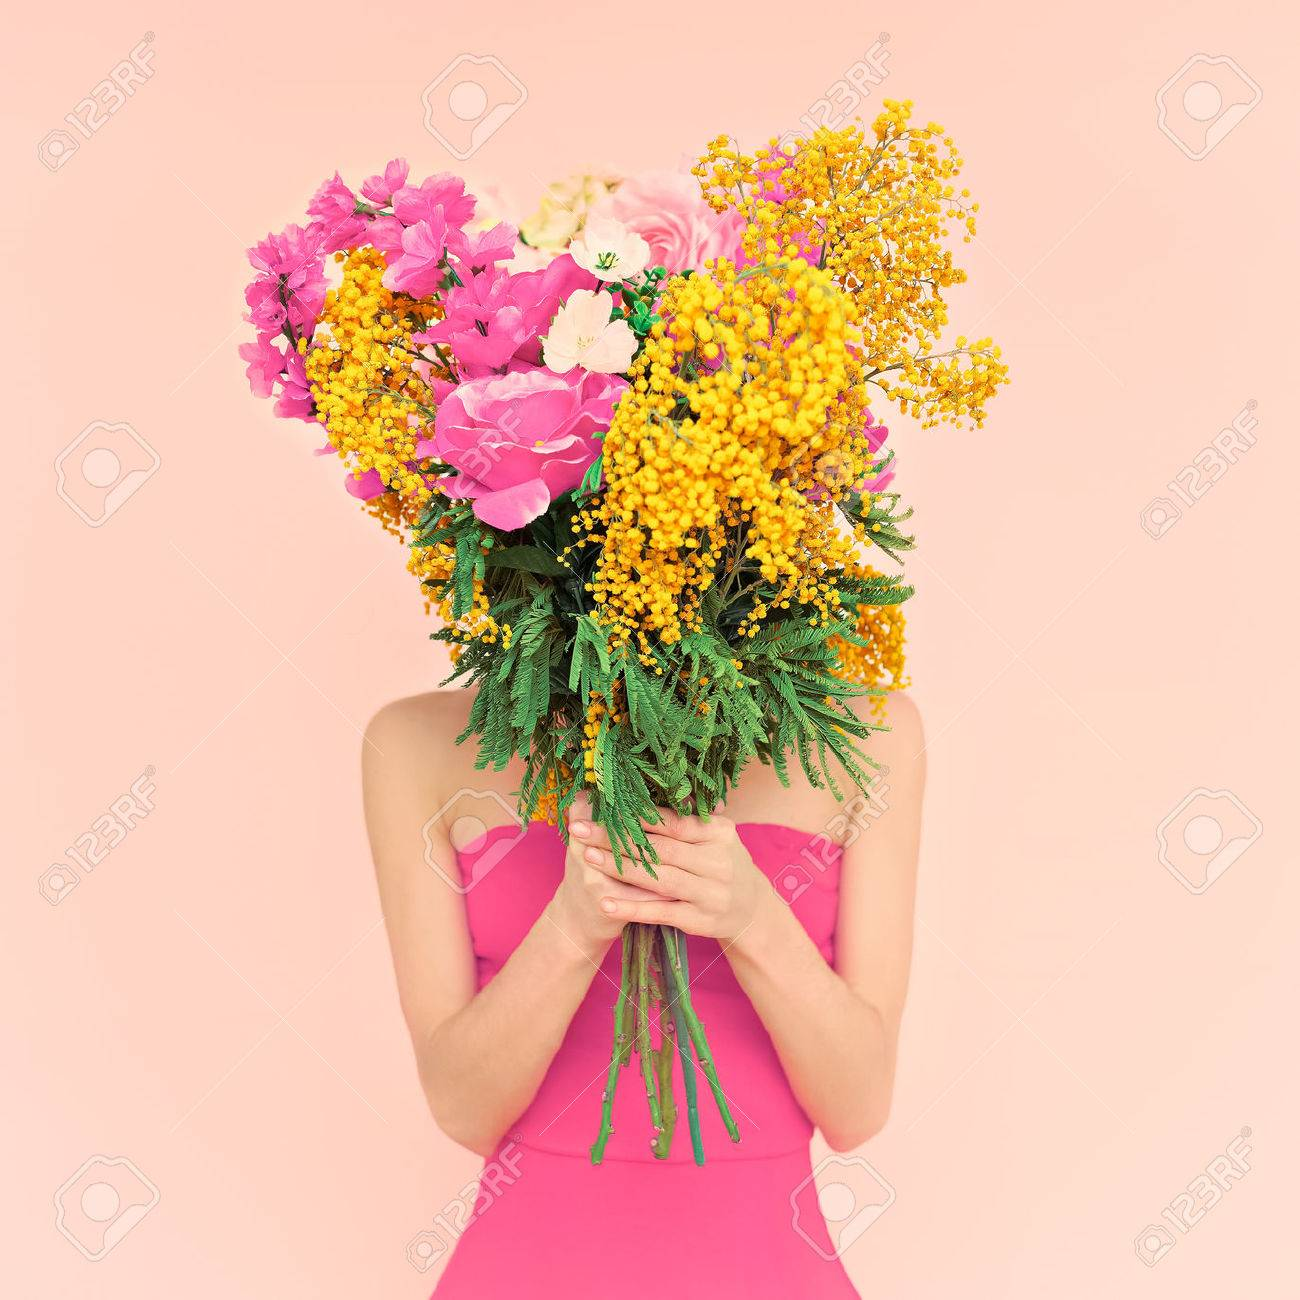 Girl With Bouquet Of Flowers In Her Hands Flowers Spring Romance